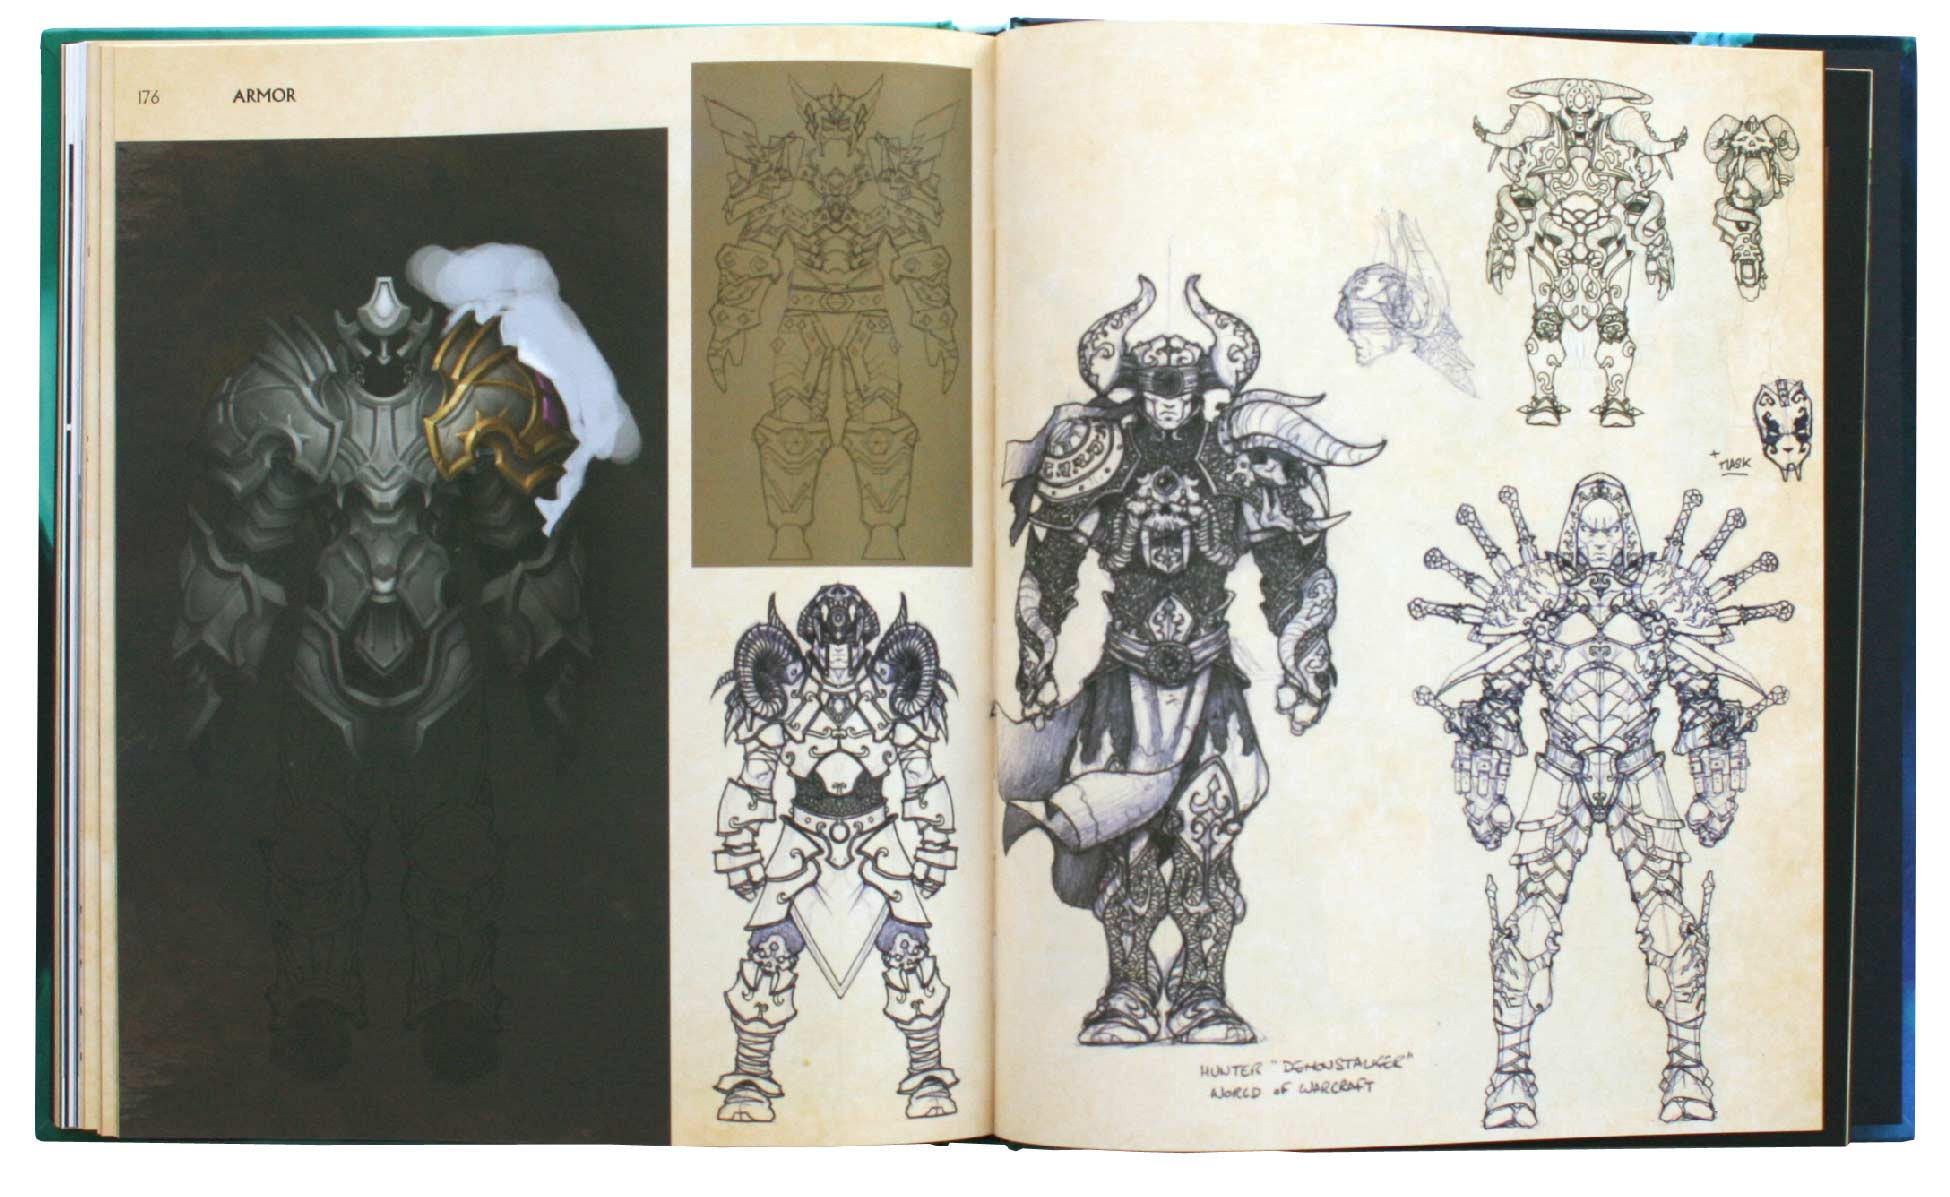 Page 176 et 177 de l'Art book : The Art of the Burning Crusade (World of Warcraft)